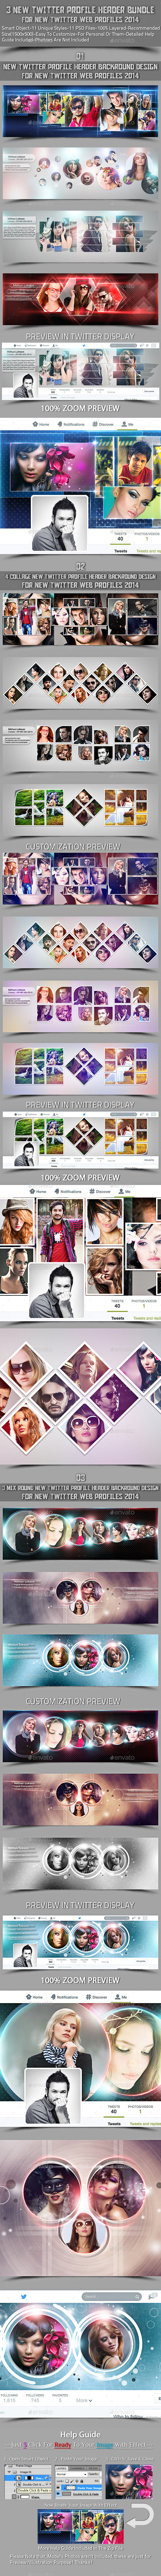 GraphicRiver 3 New Twitter Profile Header Bundle 8911405